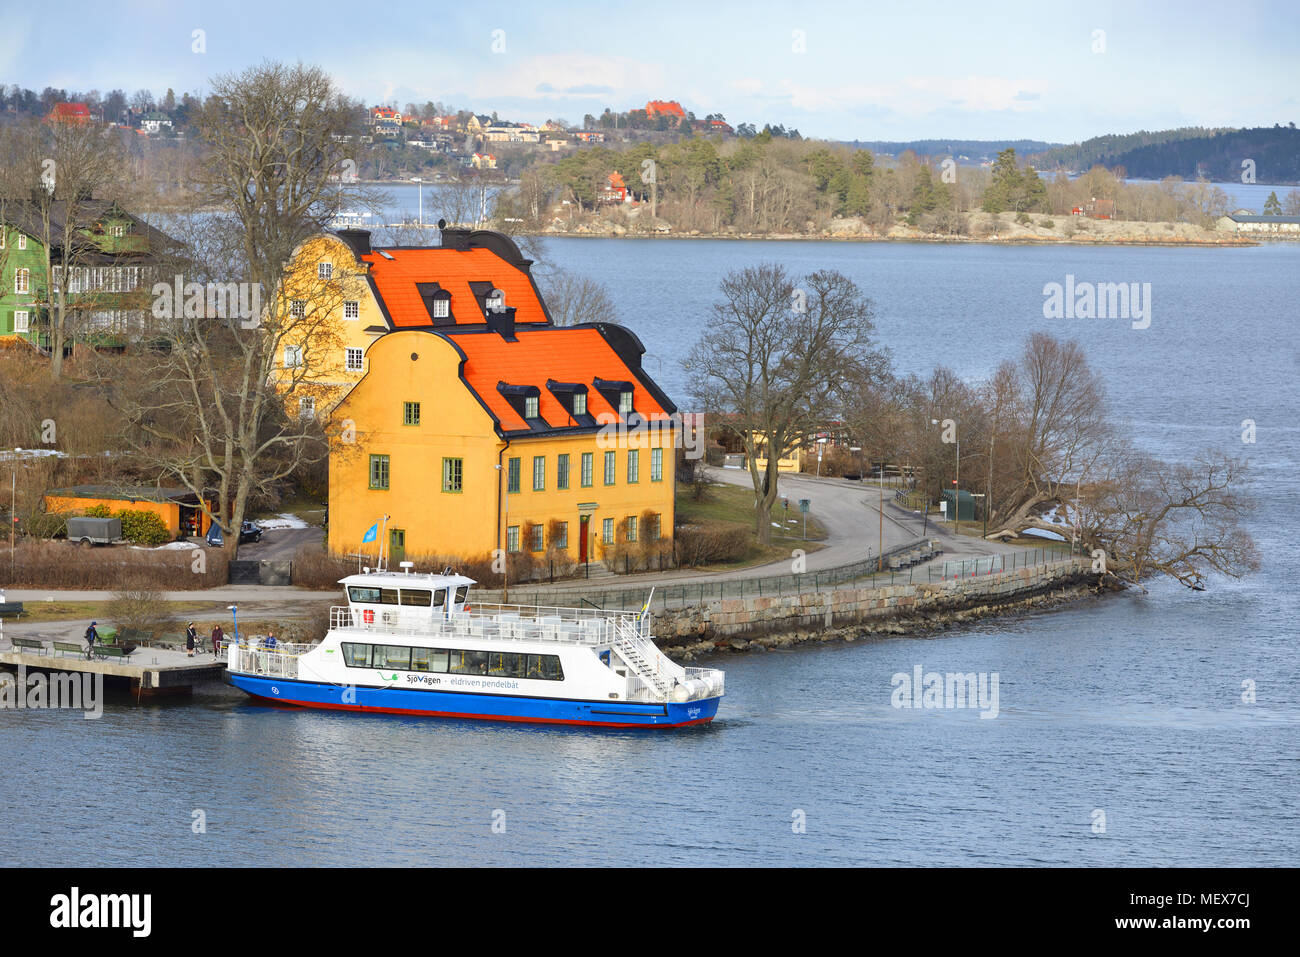 Stockholm archipelago. Ship in harbor of small island - Stock Image